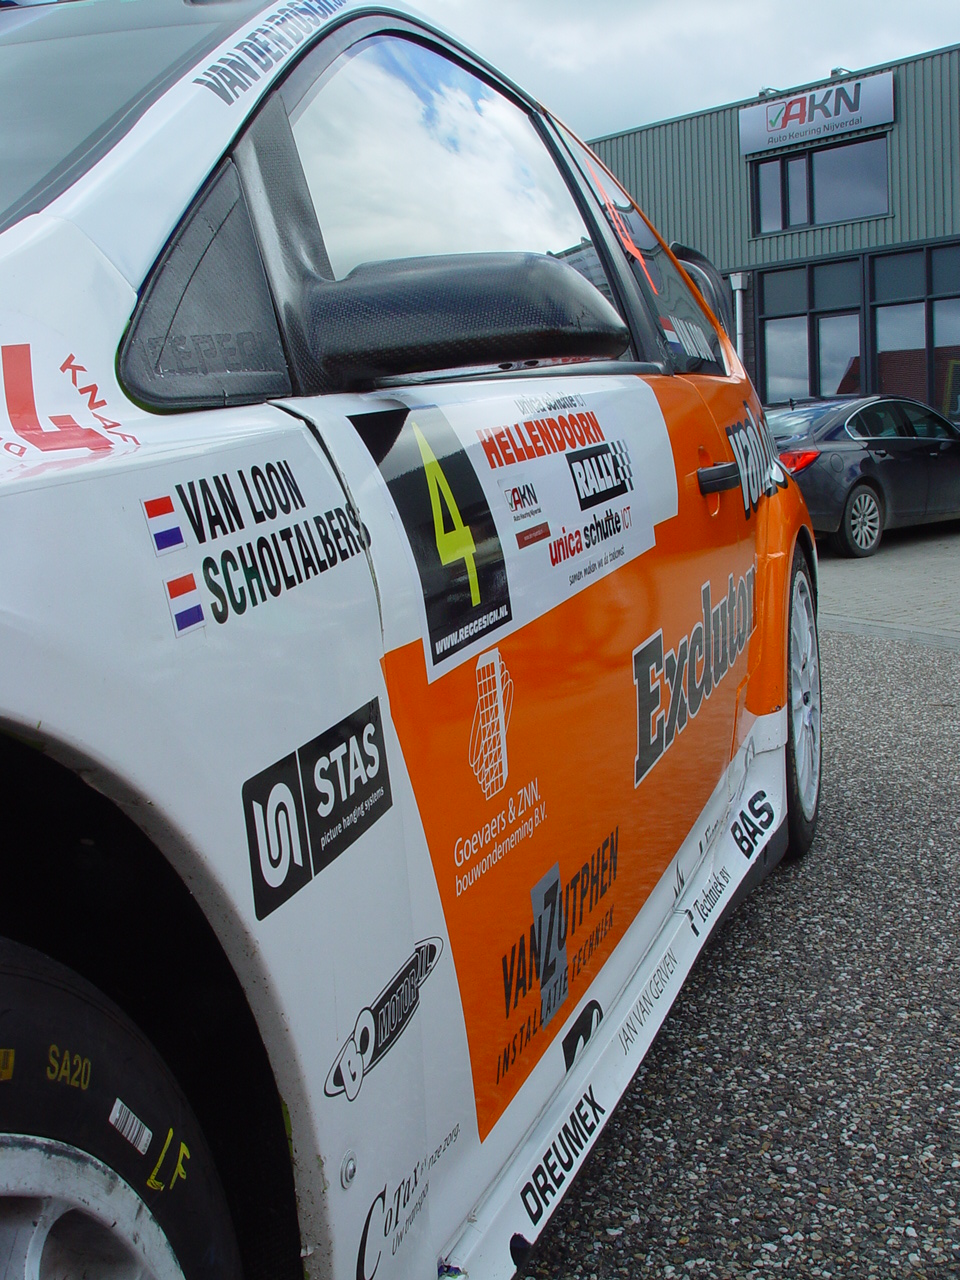 Rally Helldoorn-05